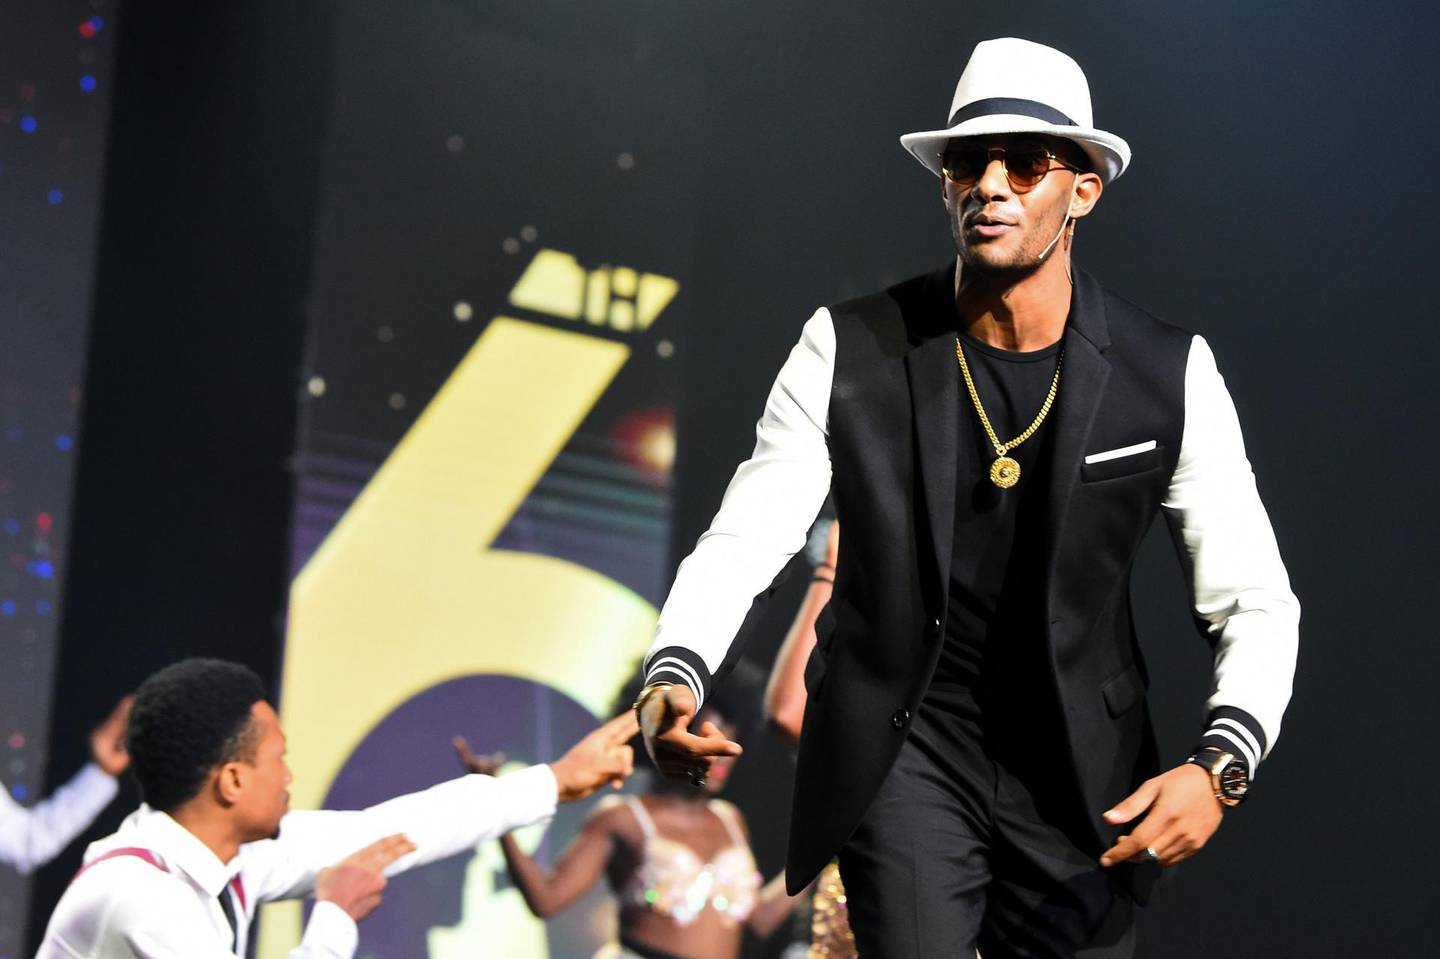 Egyptian singer Mohamed Ramadan performs during the 2019 All Africa Music Awards (AFRIMA) in Lagos, on November 24, 2019. The All Africa Music Awards (AFRIMA) is designed to create value for Africans, unite Africans through music, promote and showcase African artists and their music to non-African population in Africa and the global audience. / AFP / PIUS UTOMI EKPEI